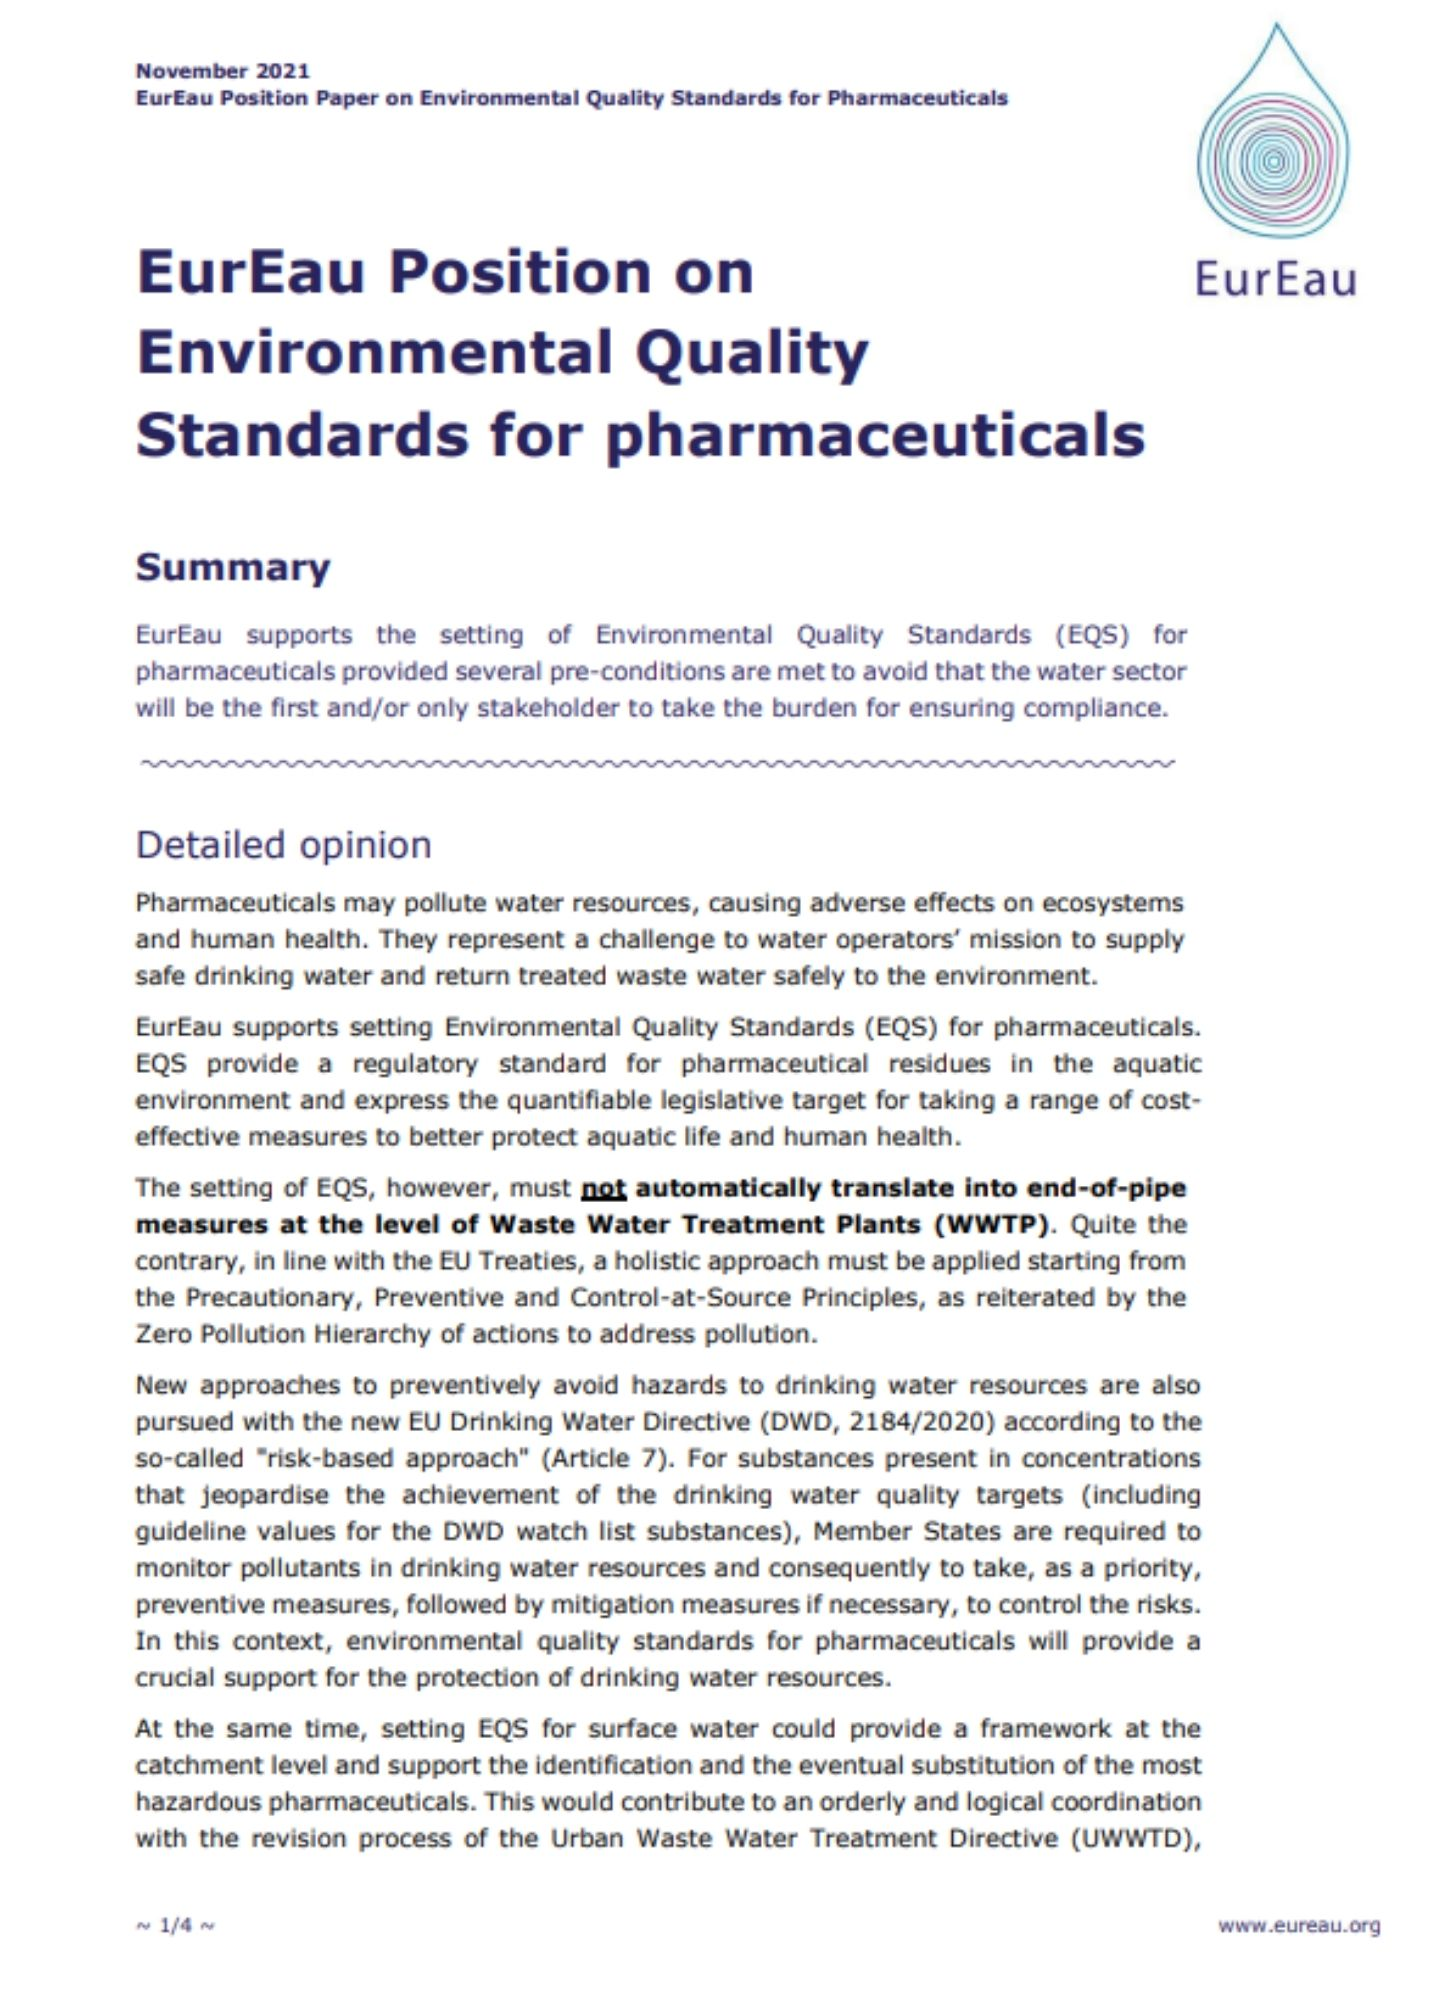 Position paper on the Precautionary and Innovation Principles